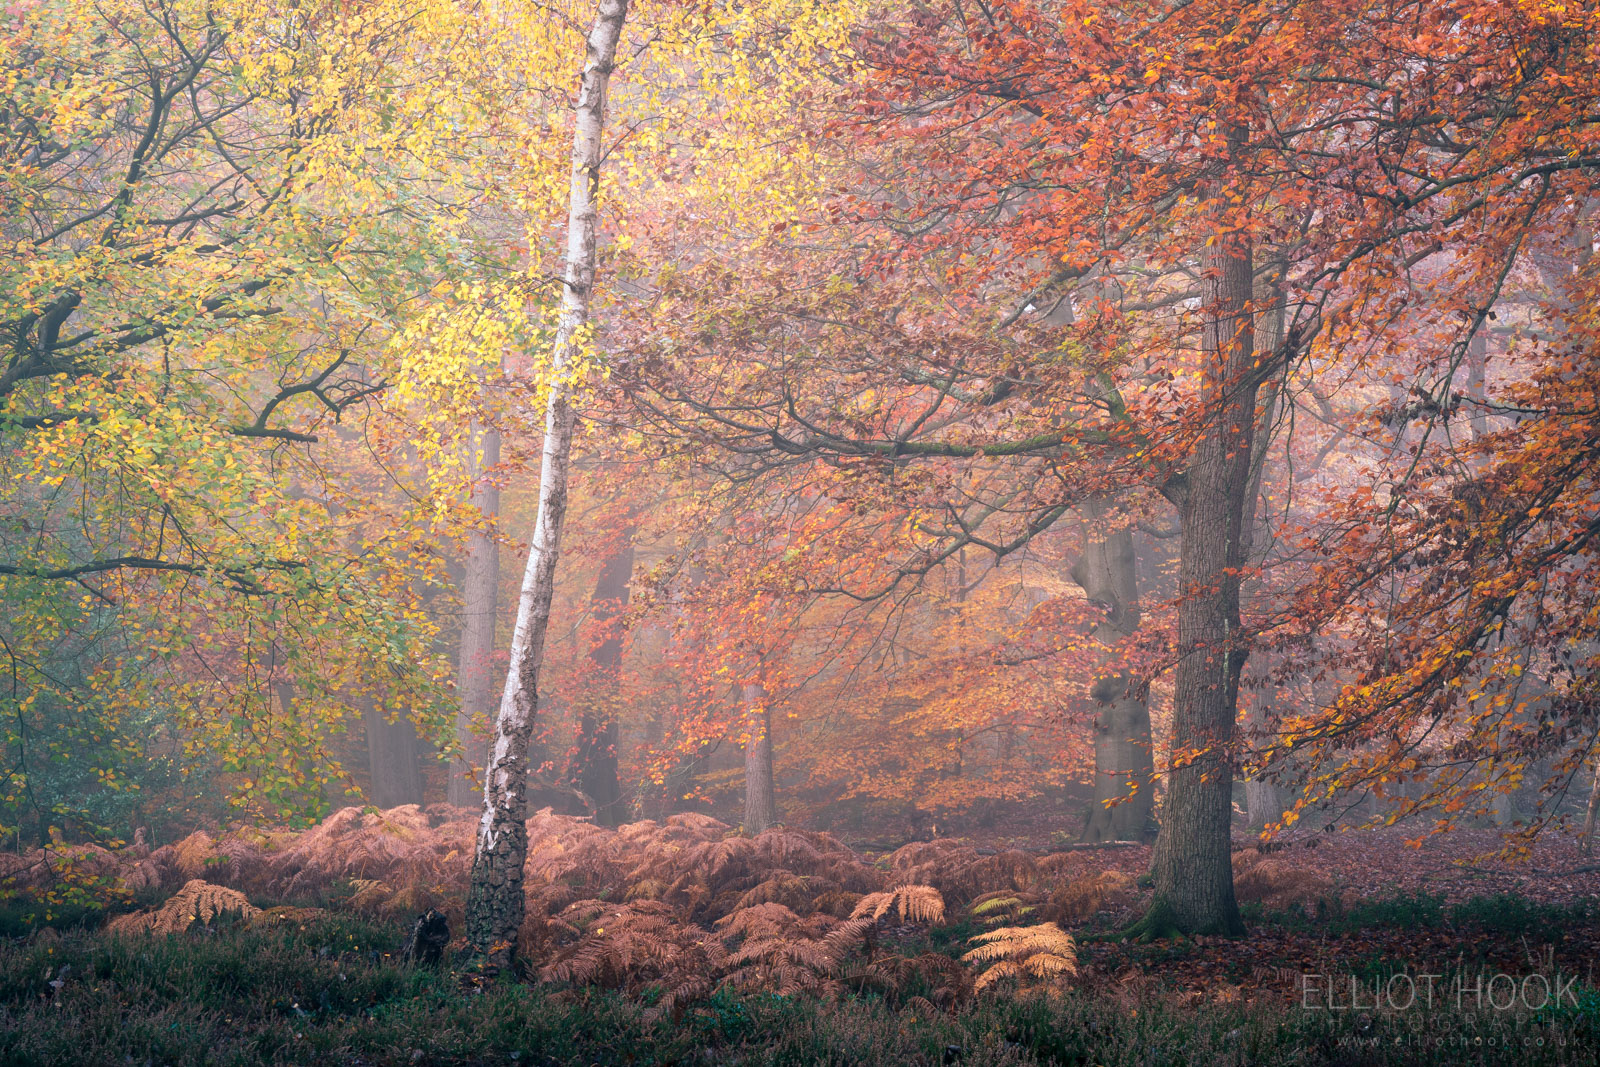 Colourful autumn woodland photograph